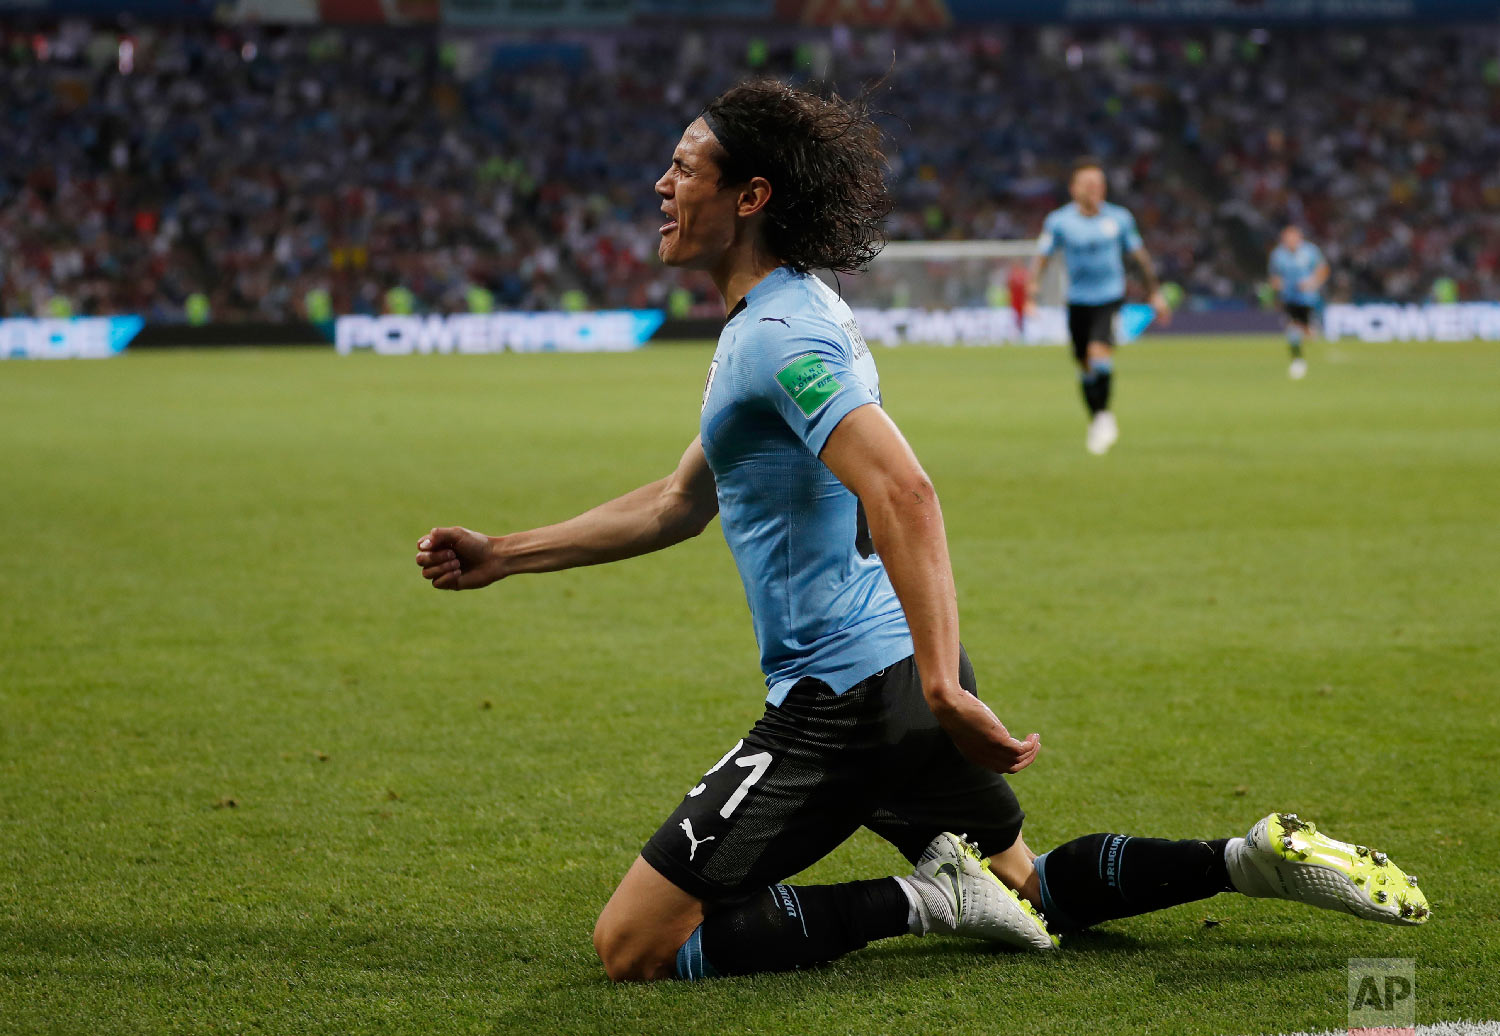 Uruguay's Edinson Cavani celebrates after he scored the opening goal during the round of 16 match between Uruguay and Portugal at the 2018 soccer World Cup at the Fisht Stadium in Sochi, Russia, Saturday, June 30, 2018. (AP Photo/Francisco Seco)